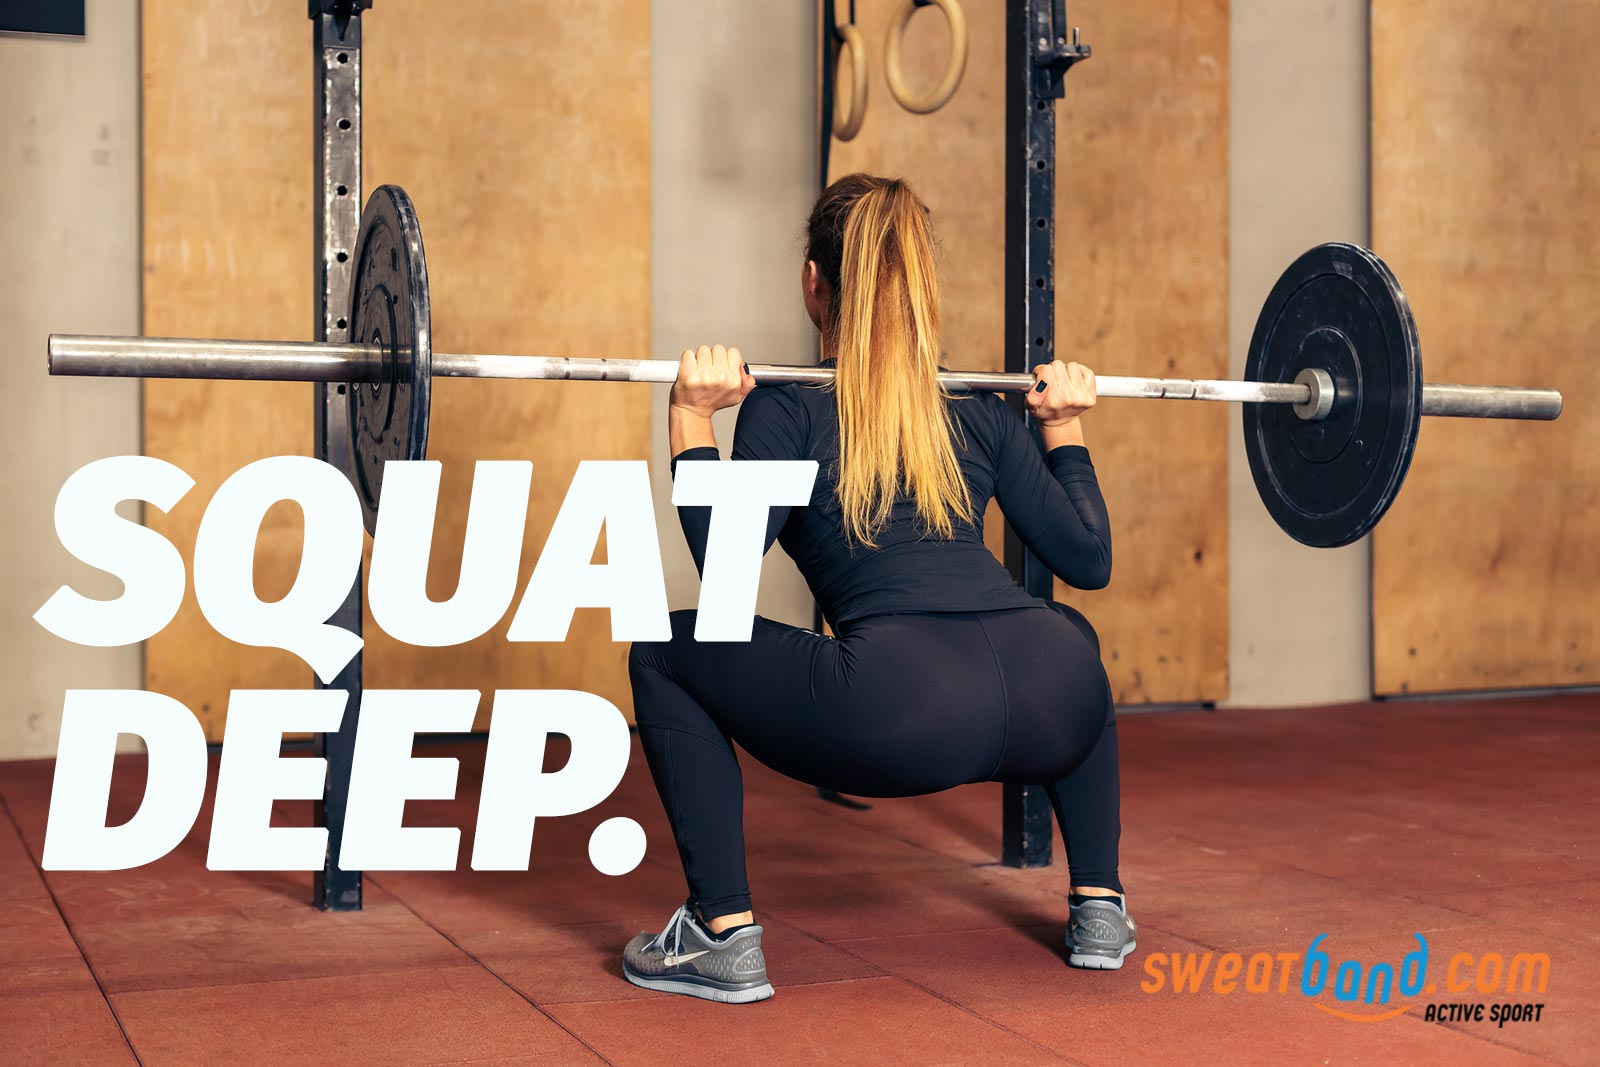 Leg day - squat deep.